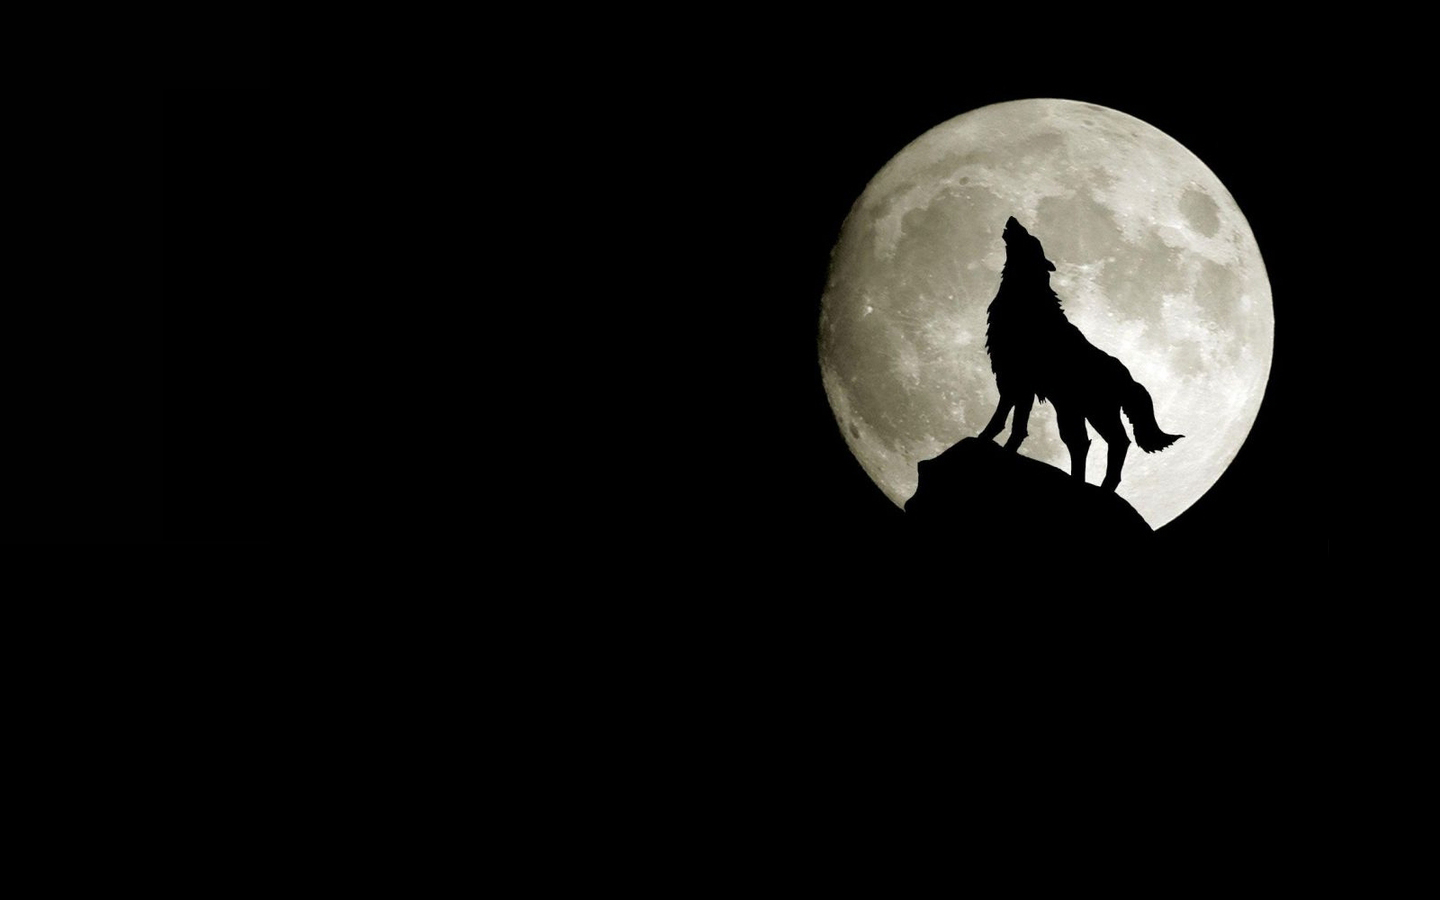 Moon Silhouette Wolves Wallpaper #219911 - Resolution 1440x900 px